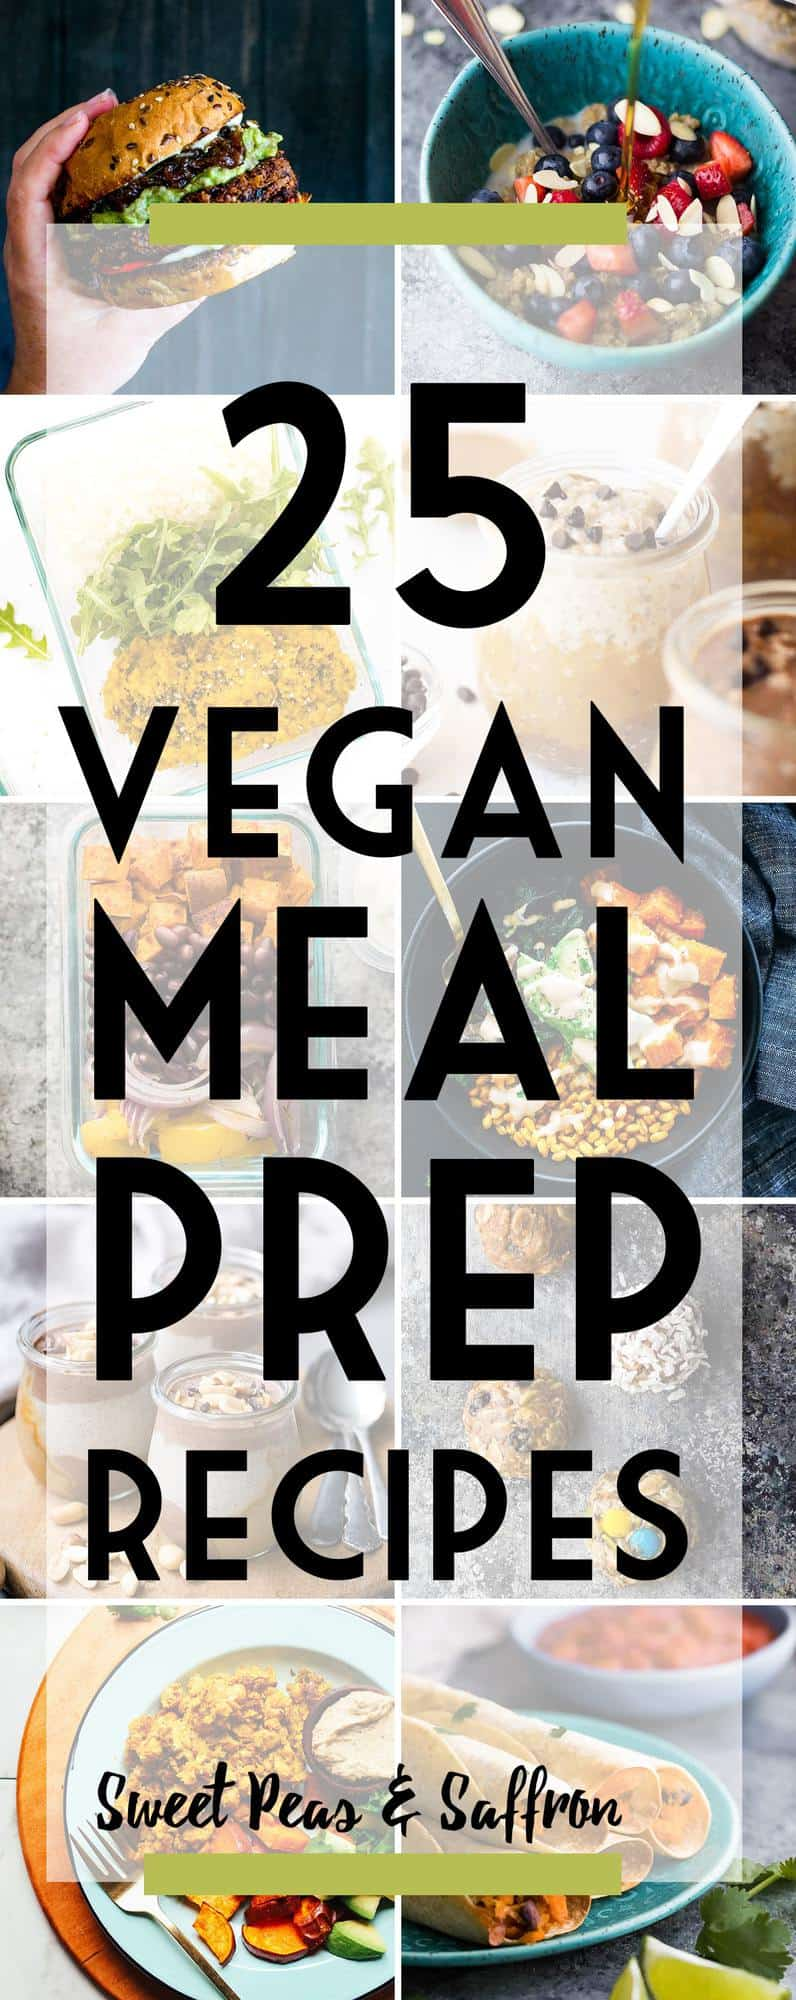 egan meal prep recipes: these make ahead vegan recipe ideas will have you covered for breakfast, lunch, dinner and snack!